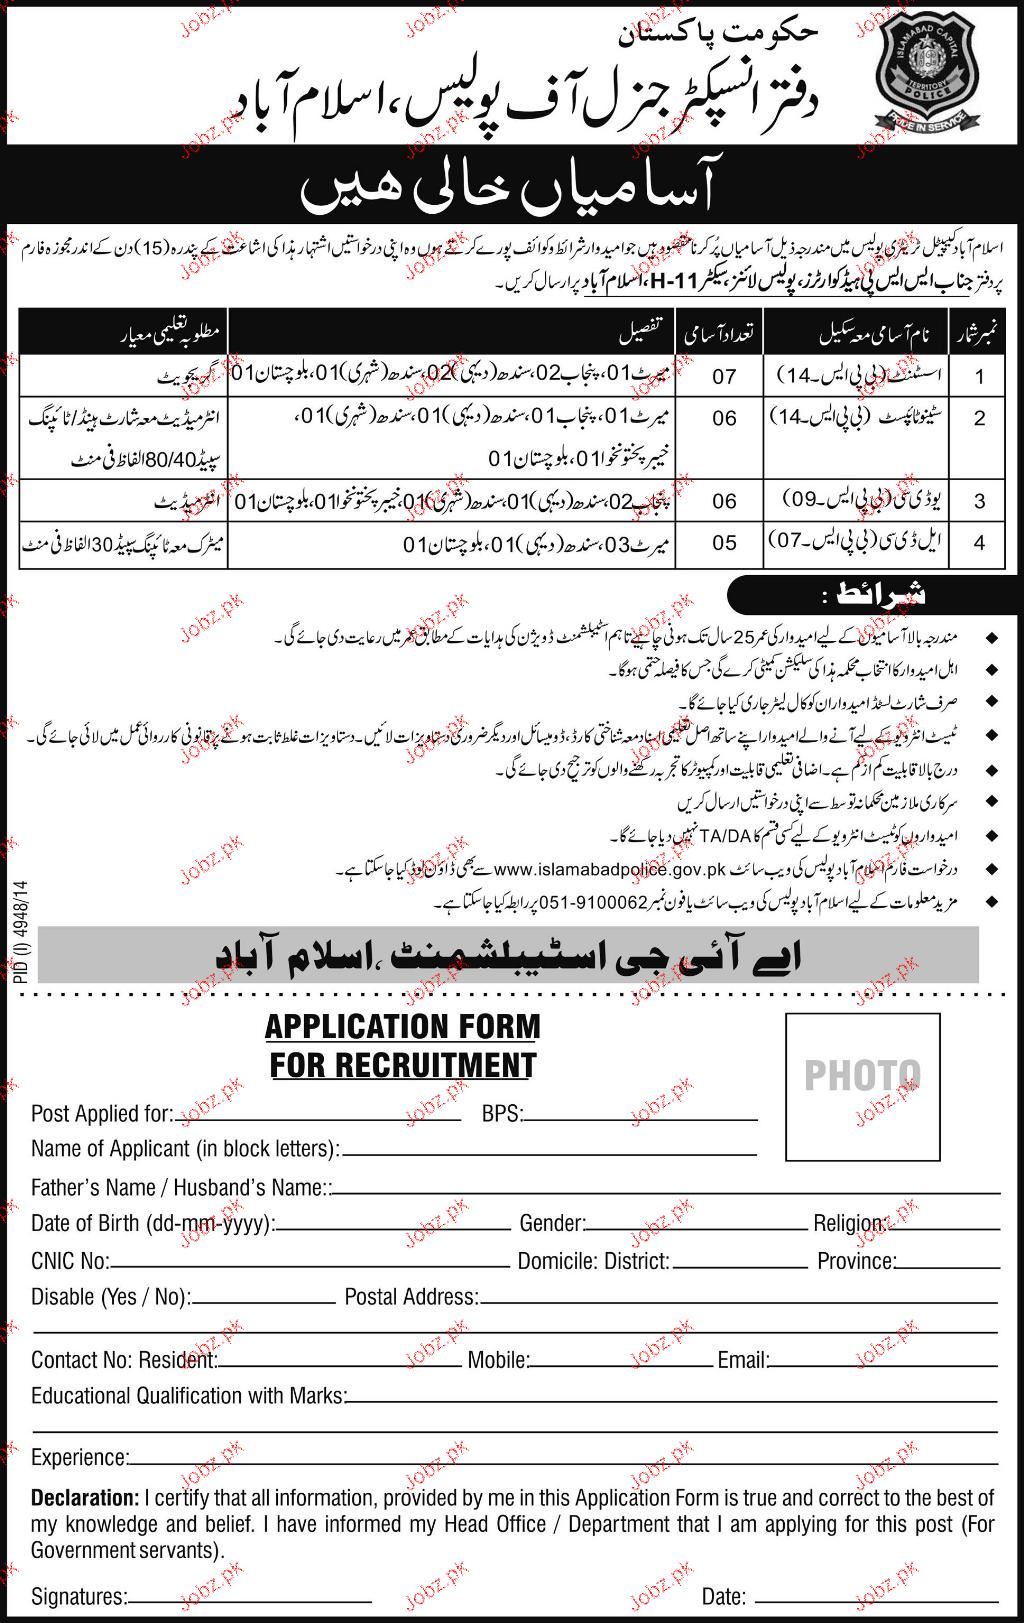 Assistants, Stenotypist, UDC Job in Islamabad Police